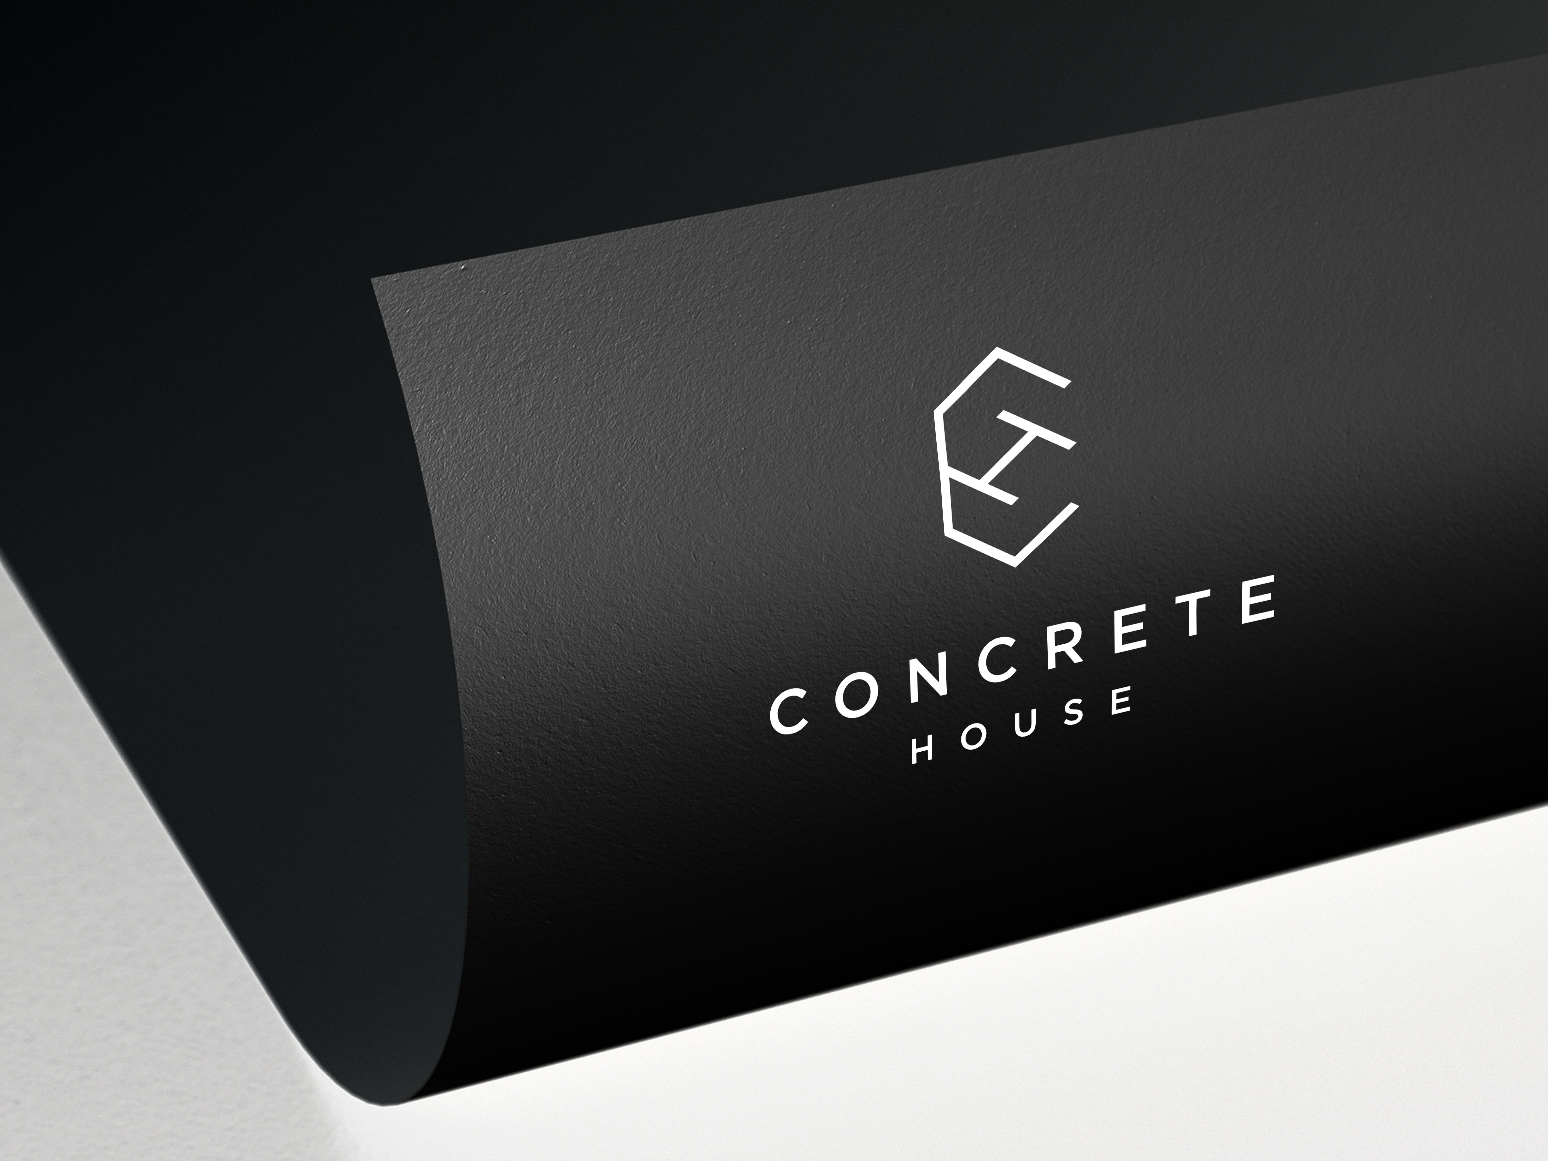 concrete house logo applications